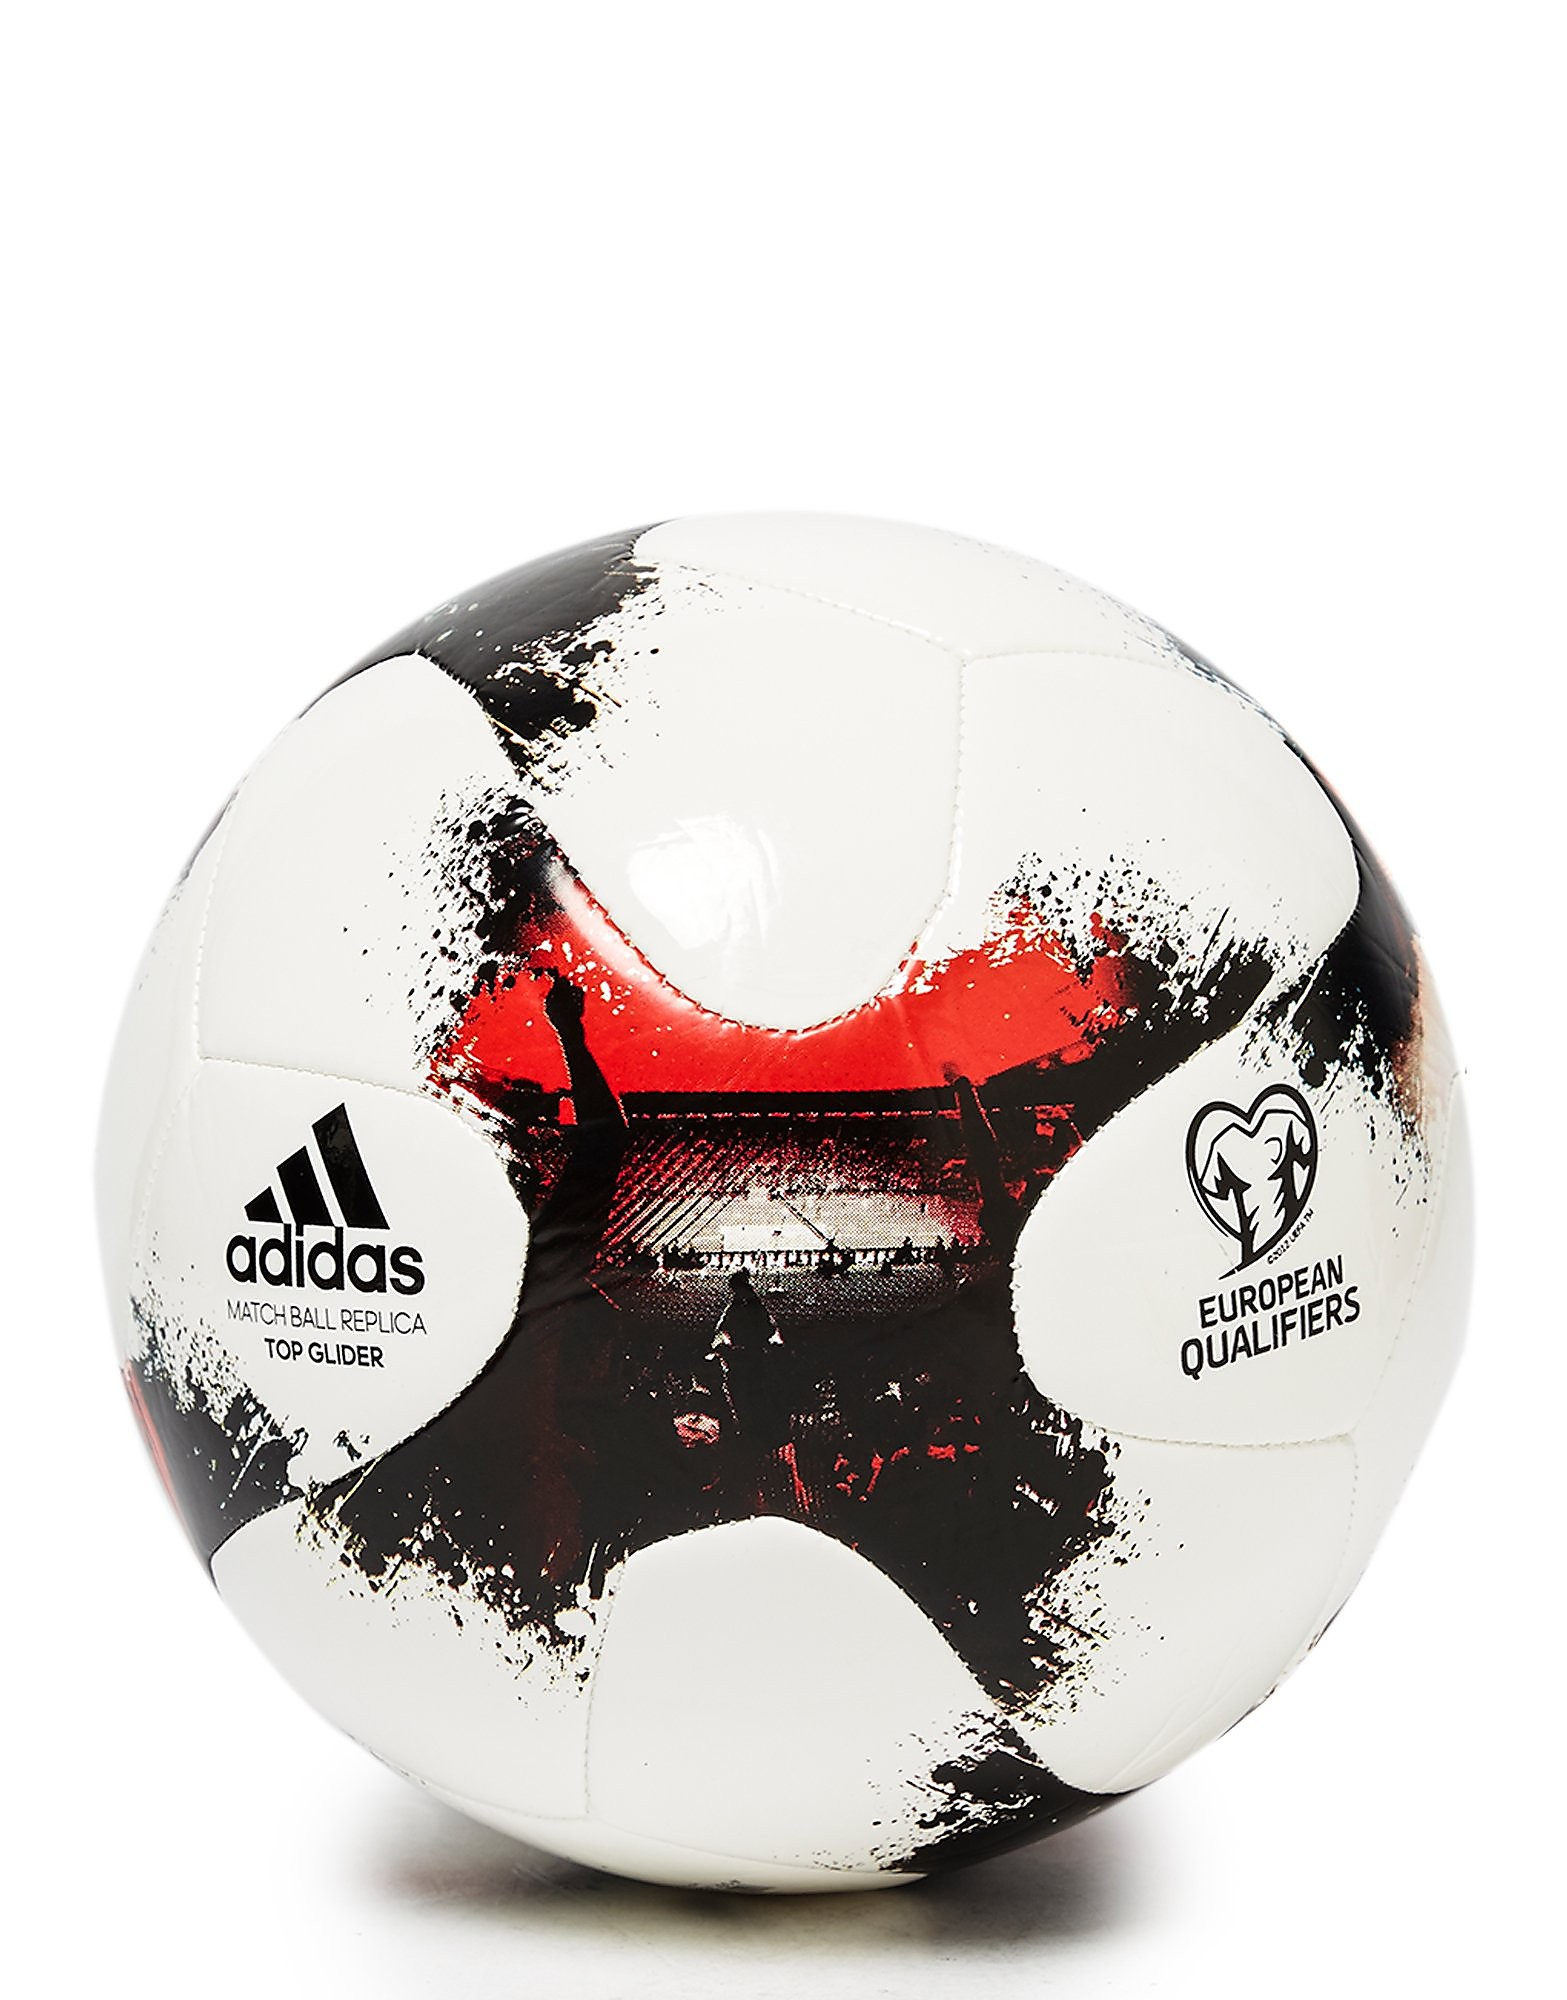 adidas European Qualifiers Glider Ball